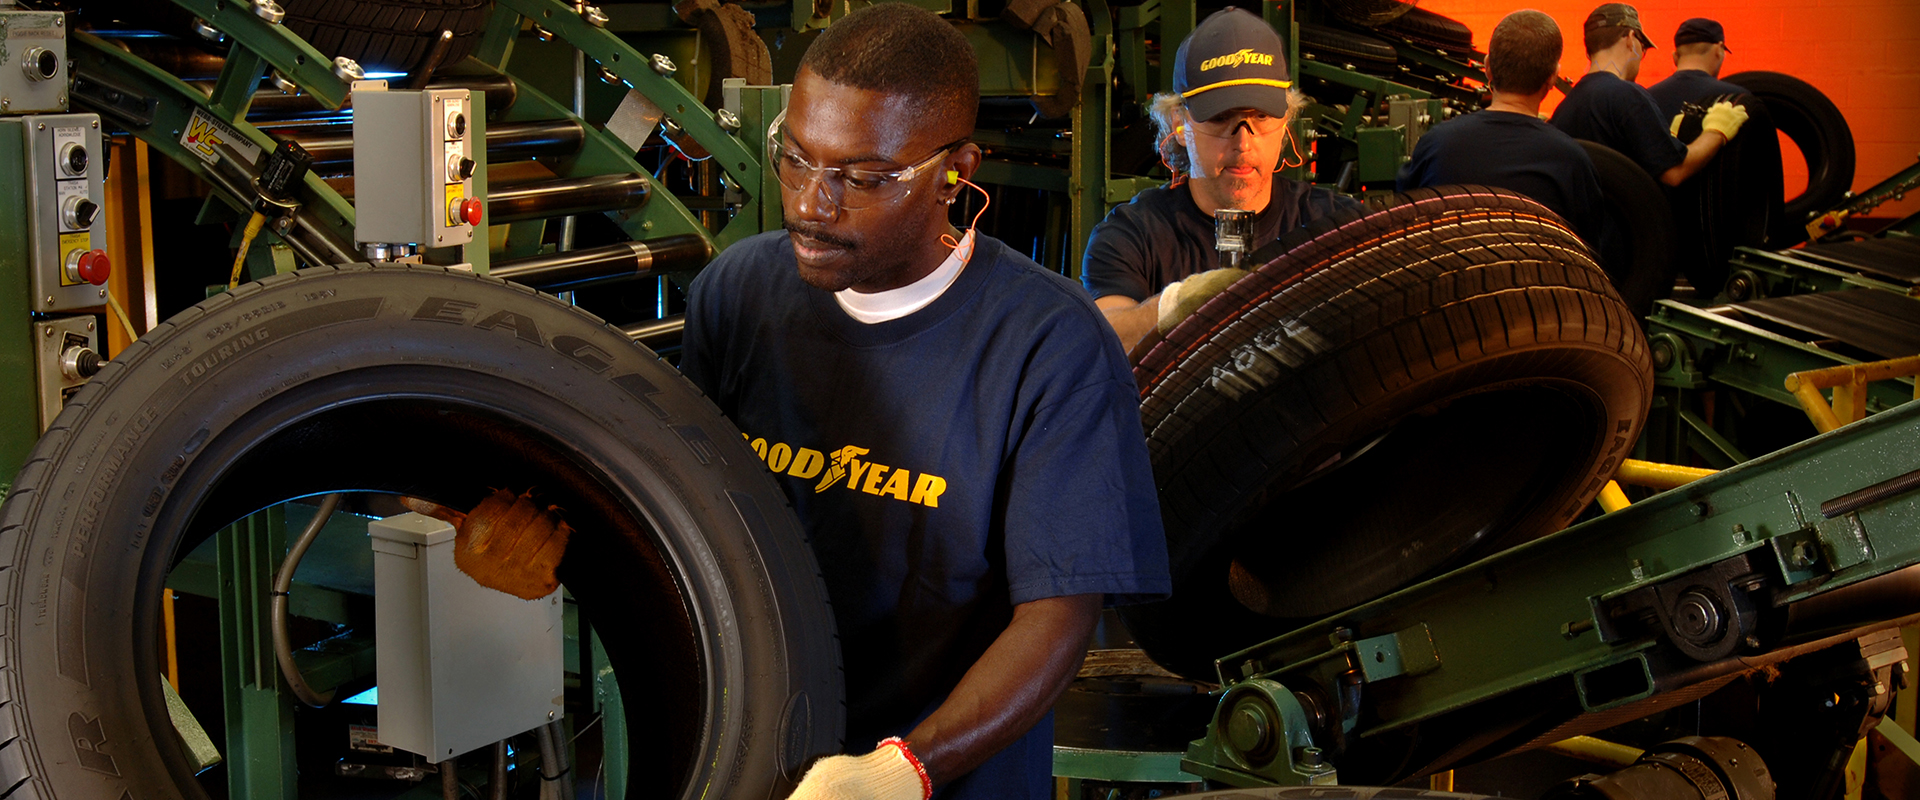 Working at goodyear